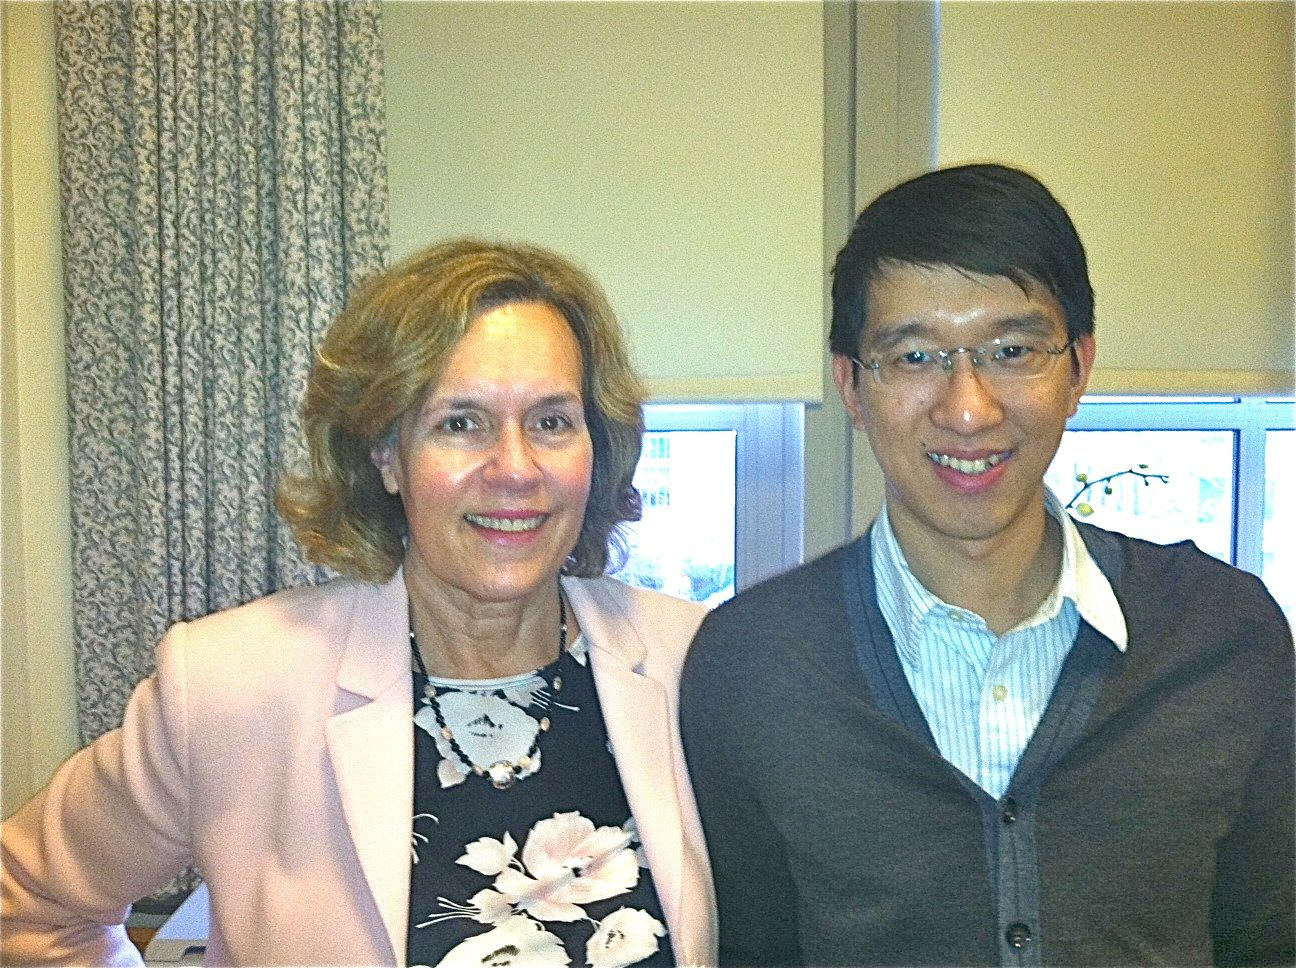 Deming Chao with Dr. Gudas